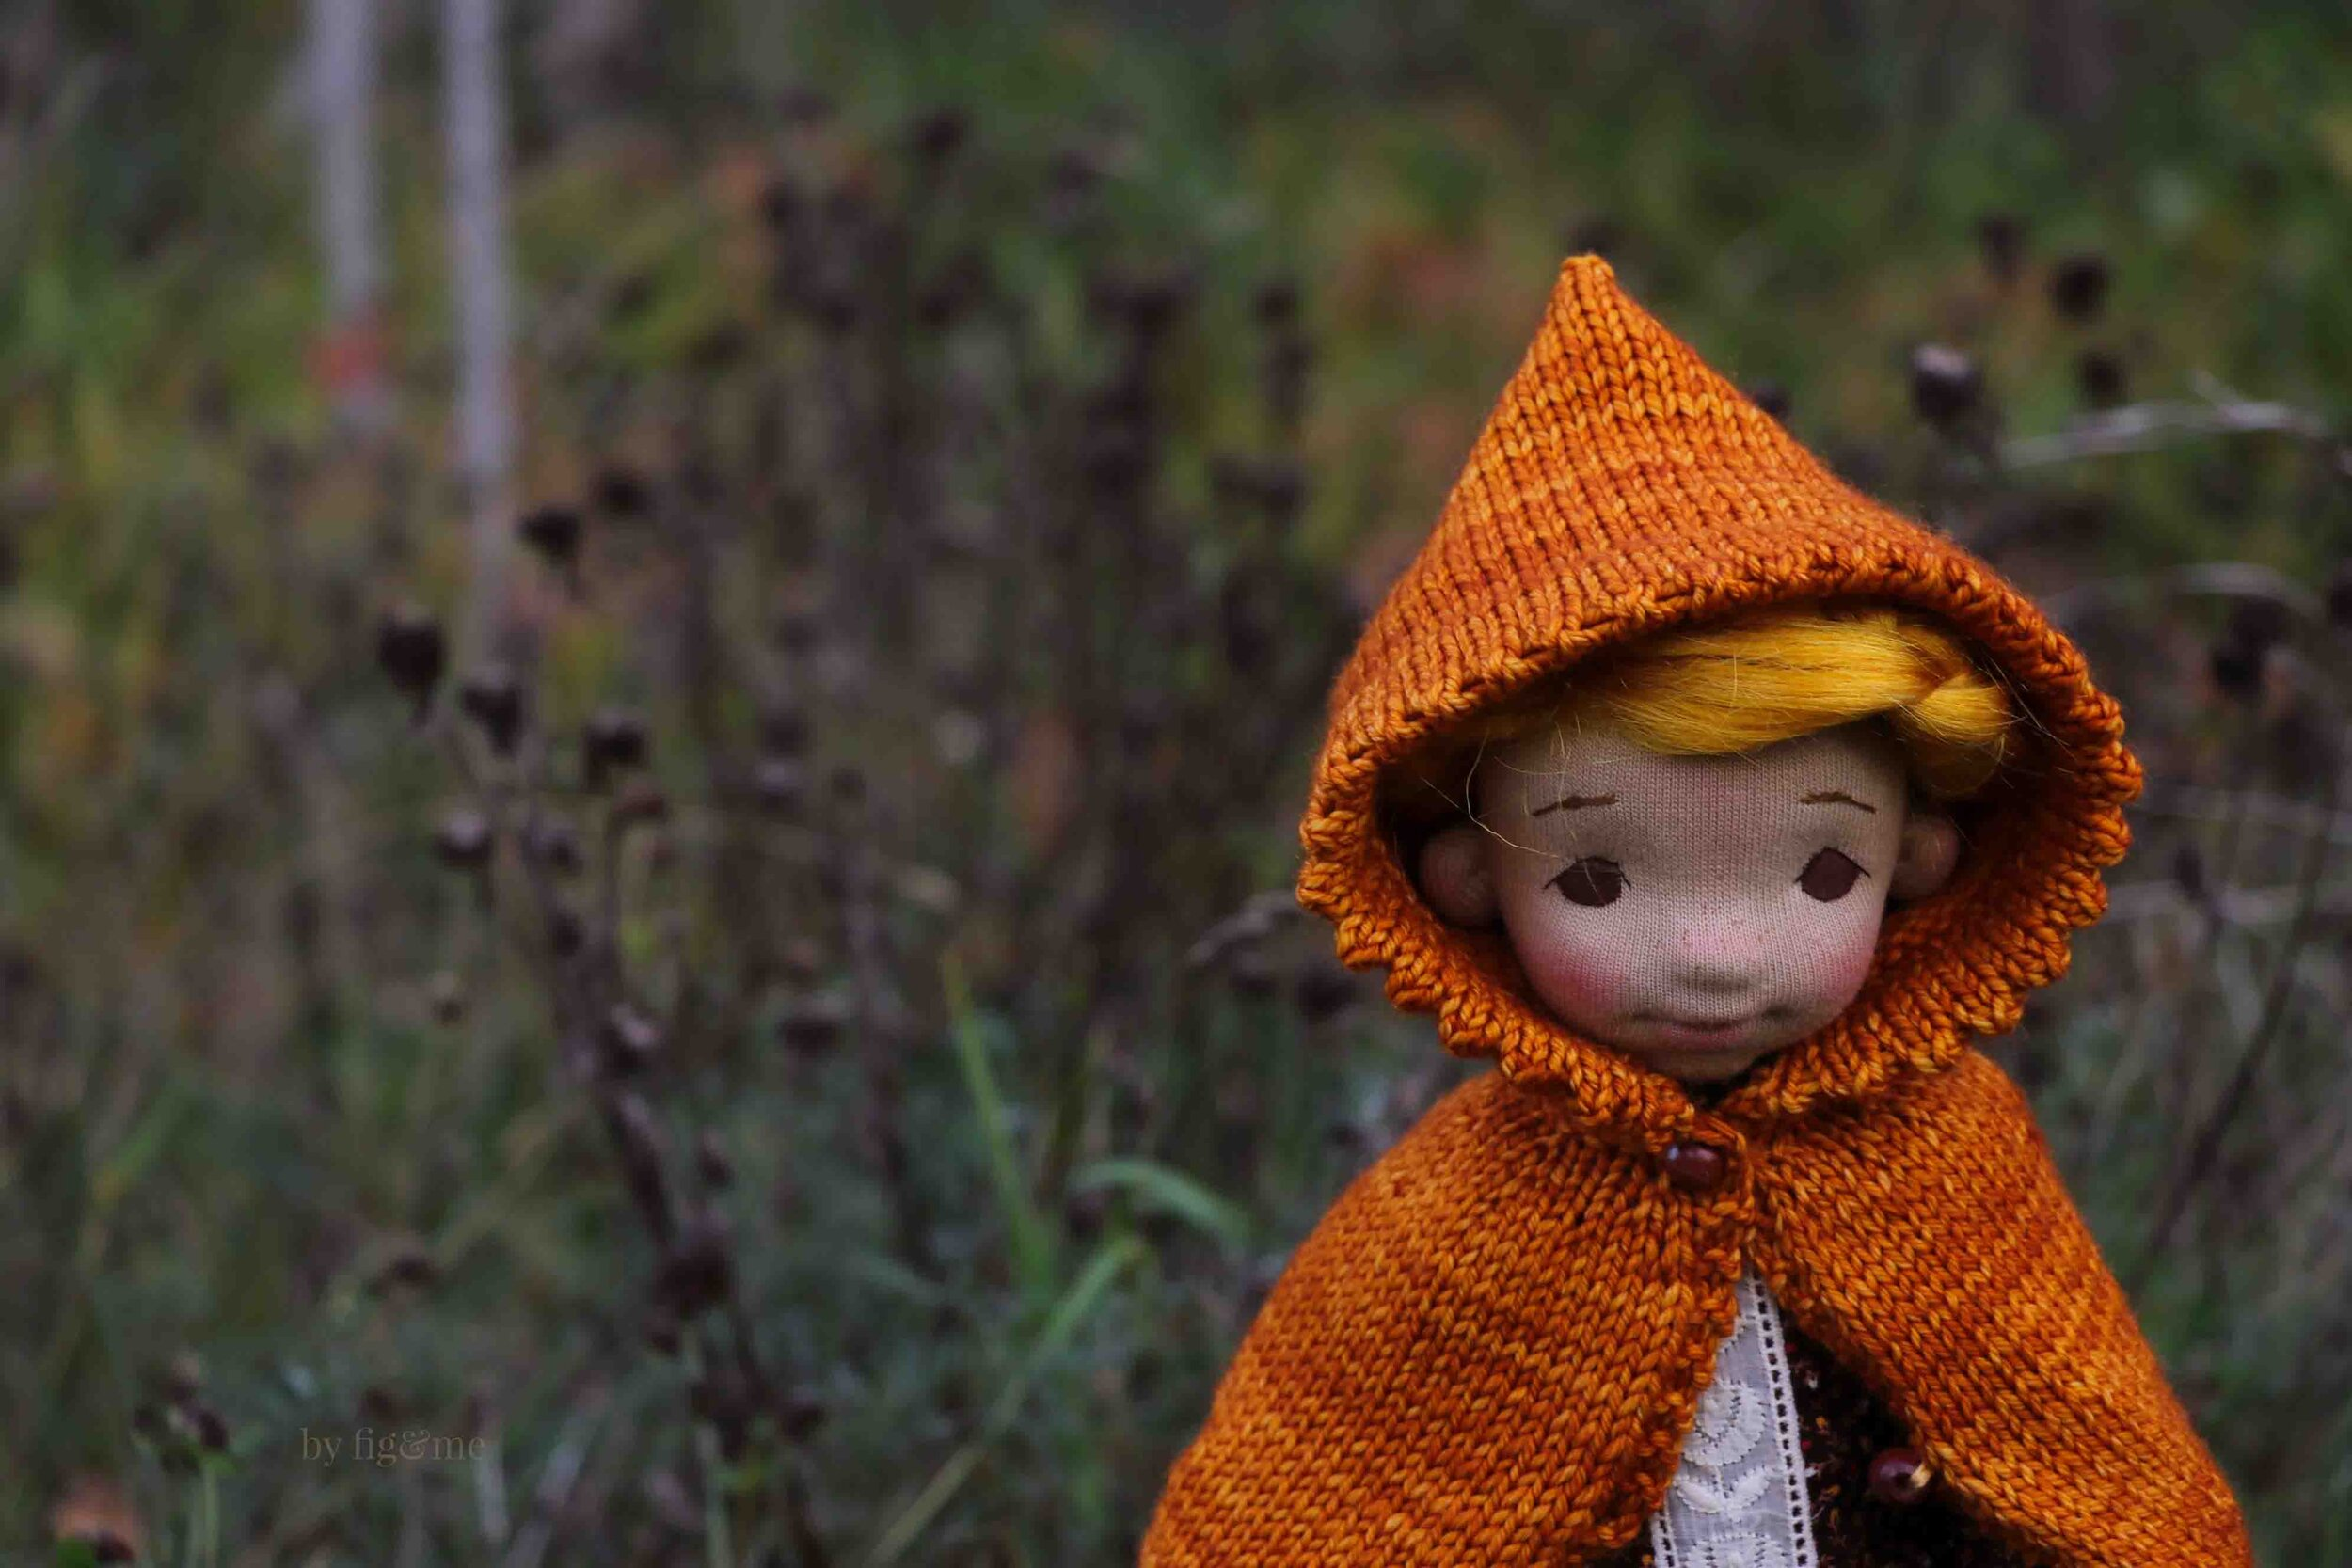 Winona, first born daughter: a natural fiber art doll by fig and me.